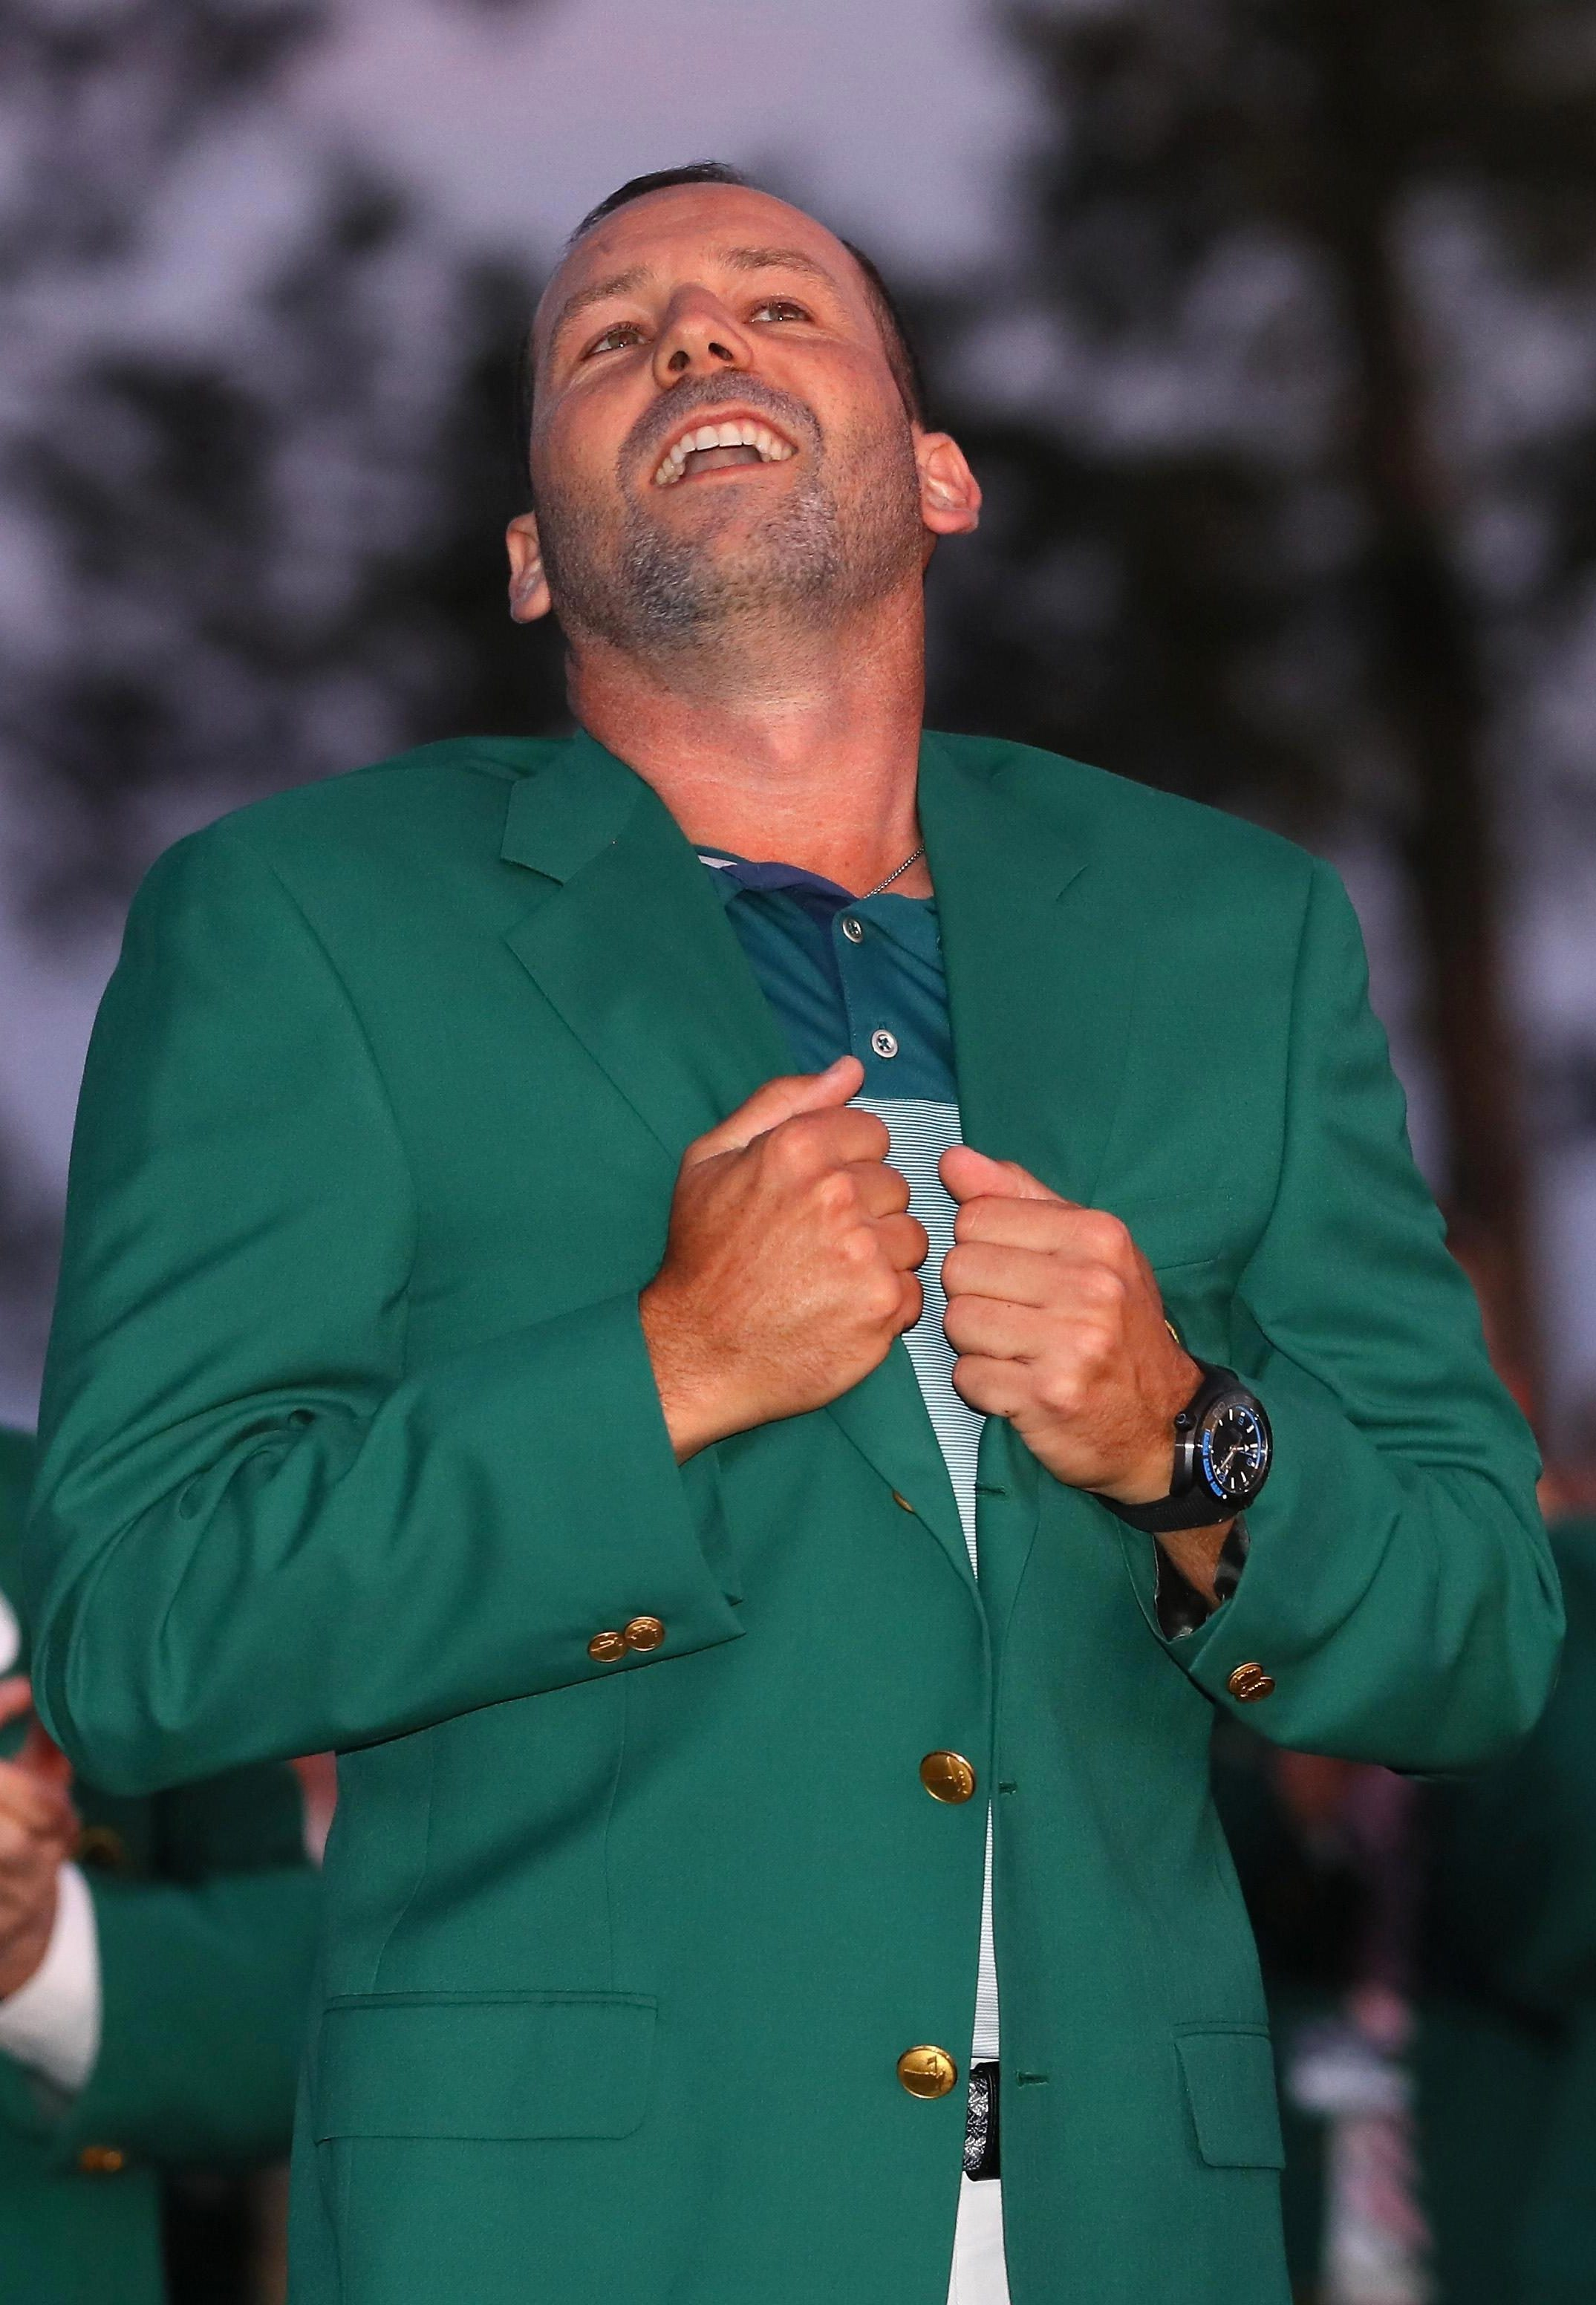 Sergio Garcia was on top of the world after finally ending his Major wait and winning the 2017 Masters